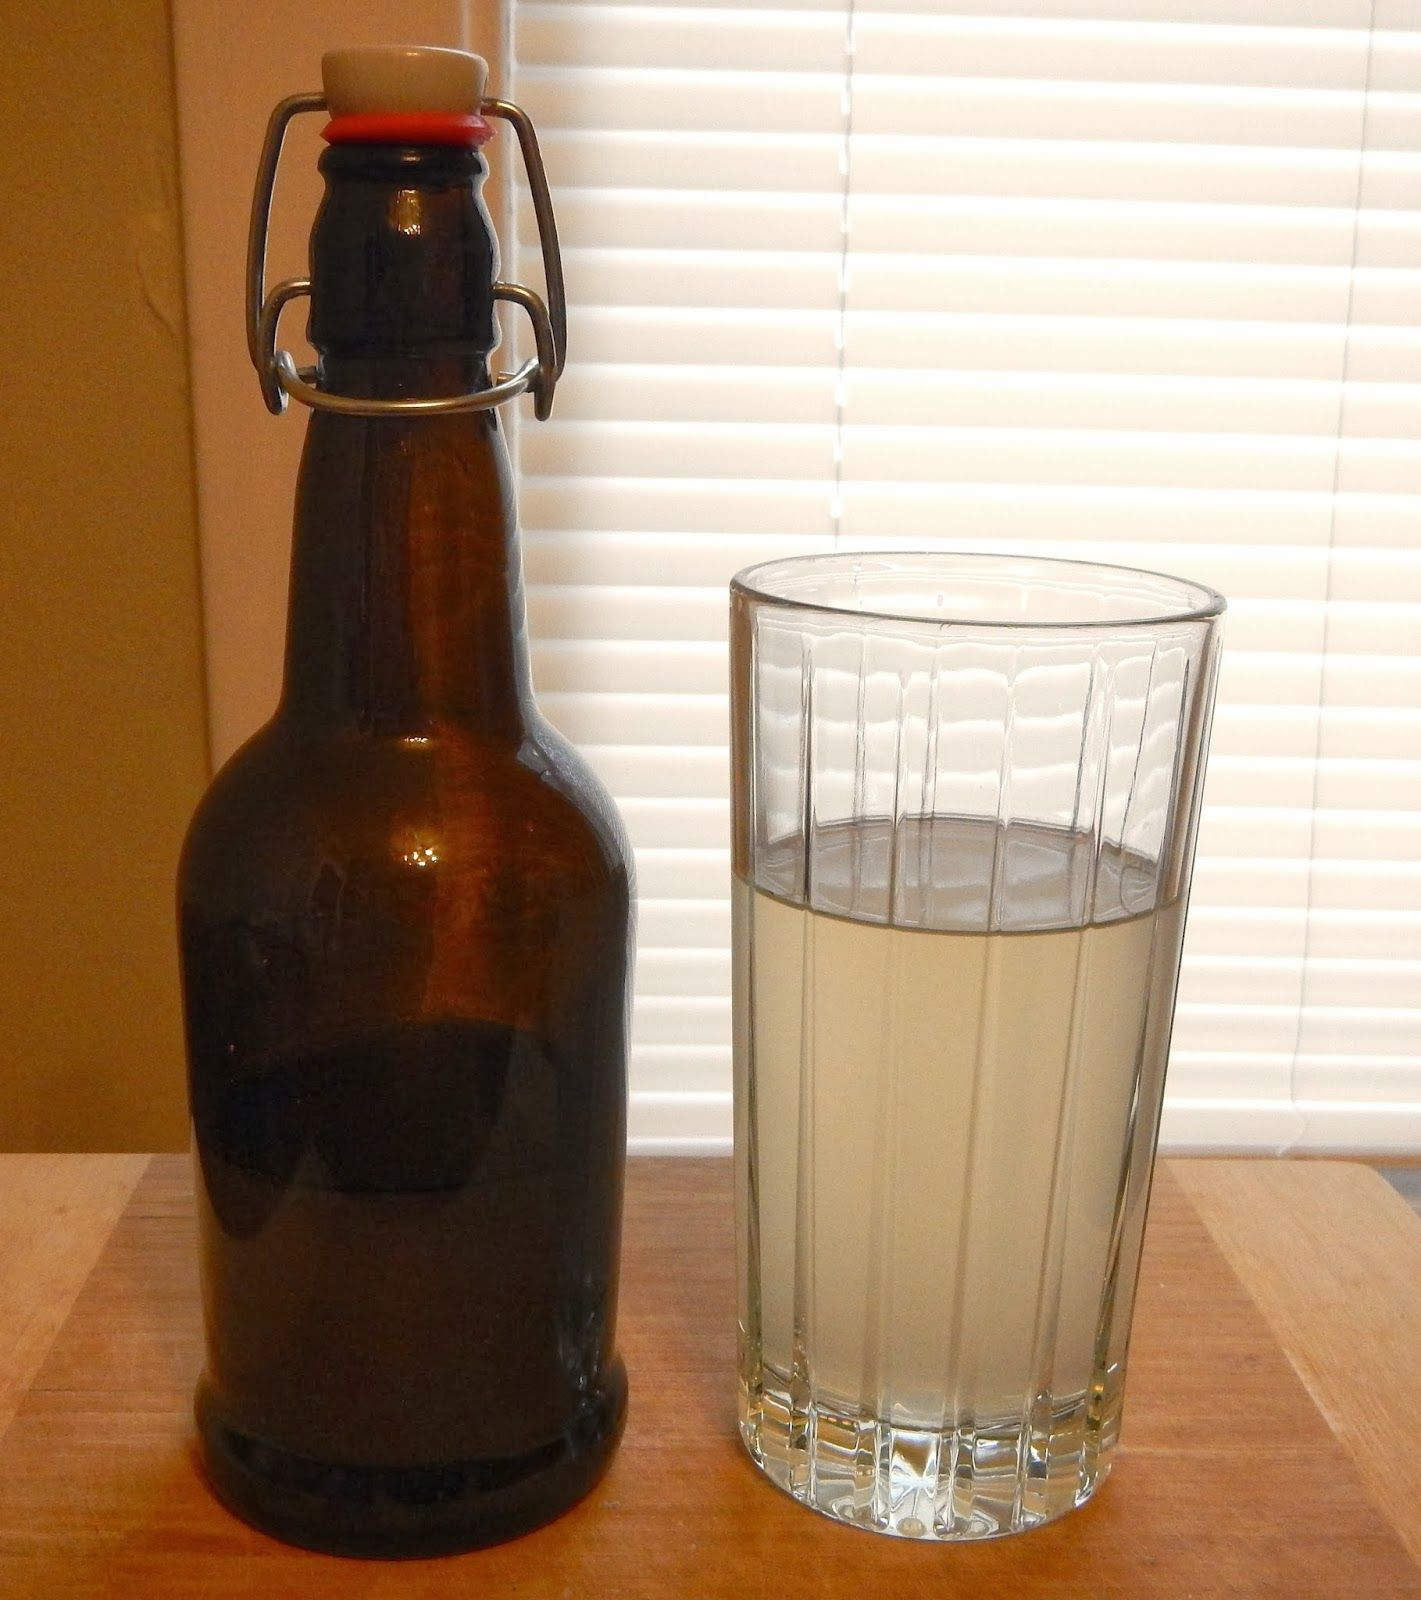 "Brewing Ginger ""Beer""- Learn how to make this tasty non-alcoholic beverage right at home! http://www.daybydayhomesteading.com/2014/03/brewing-ginger-beer_5.html"